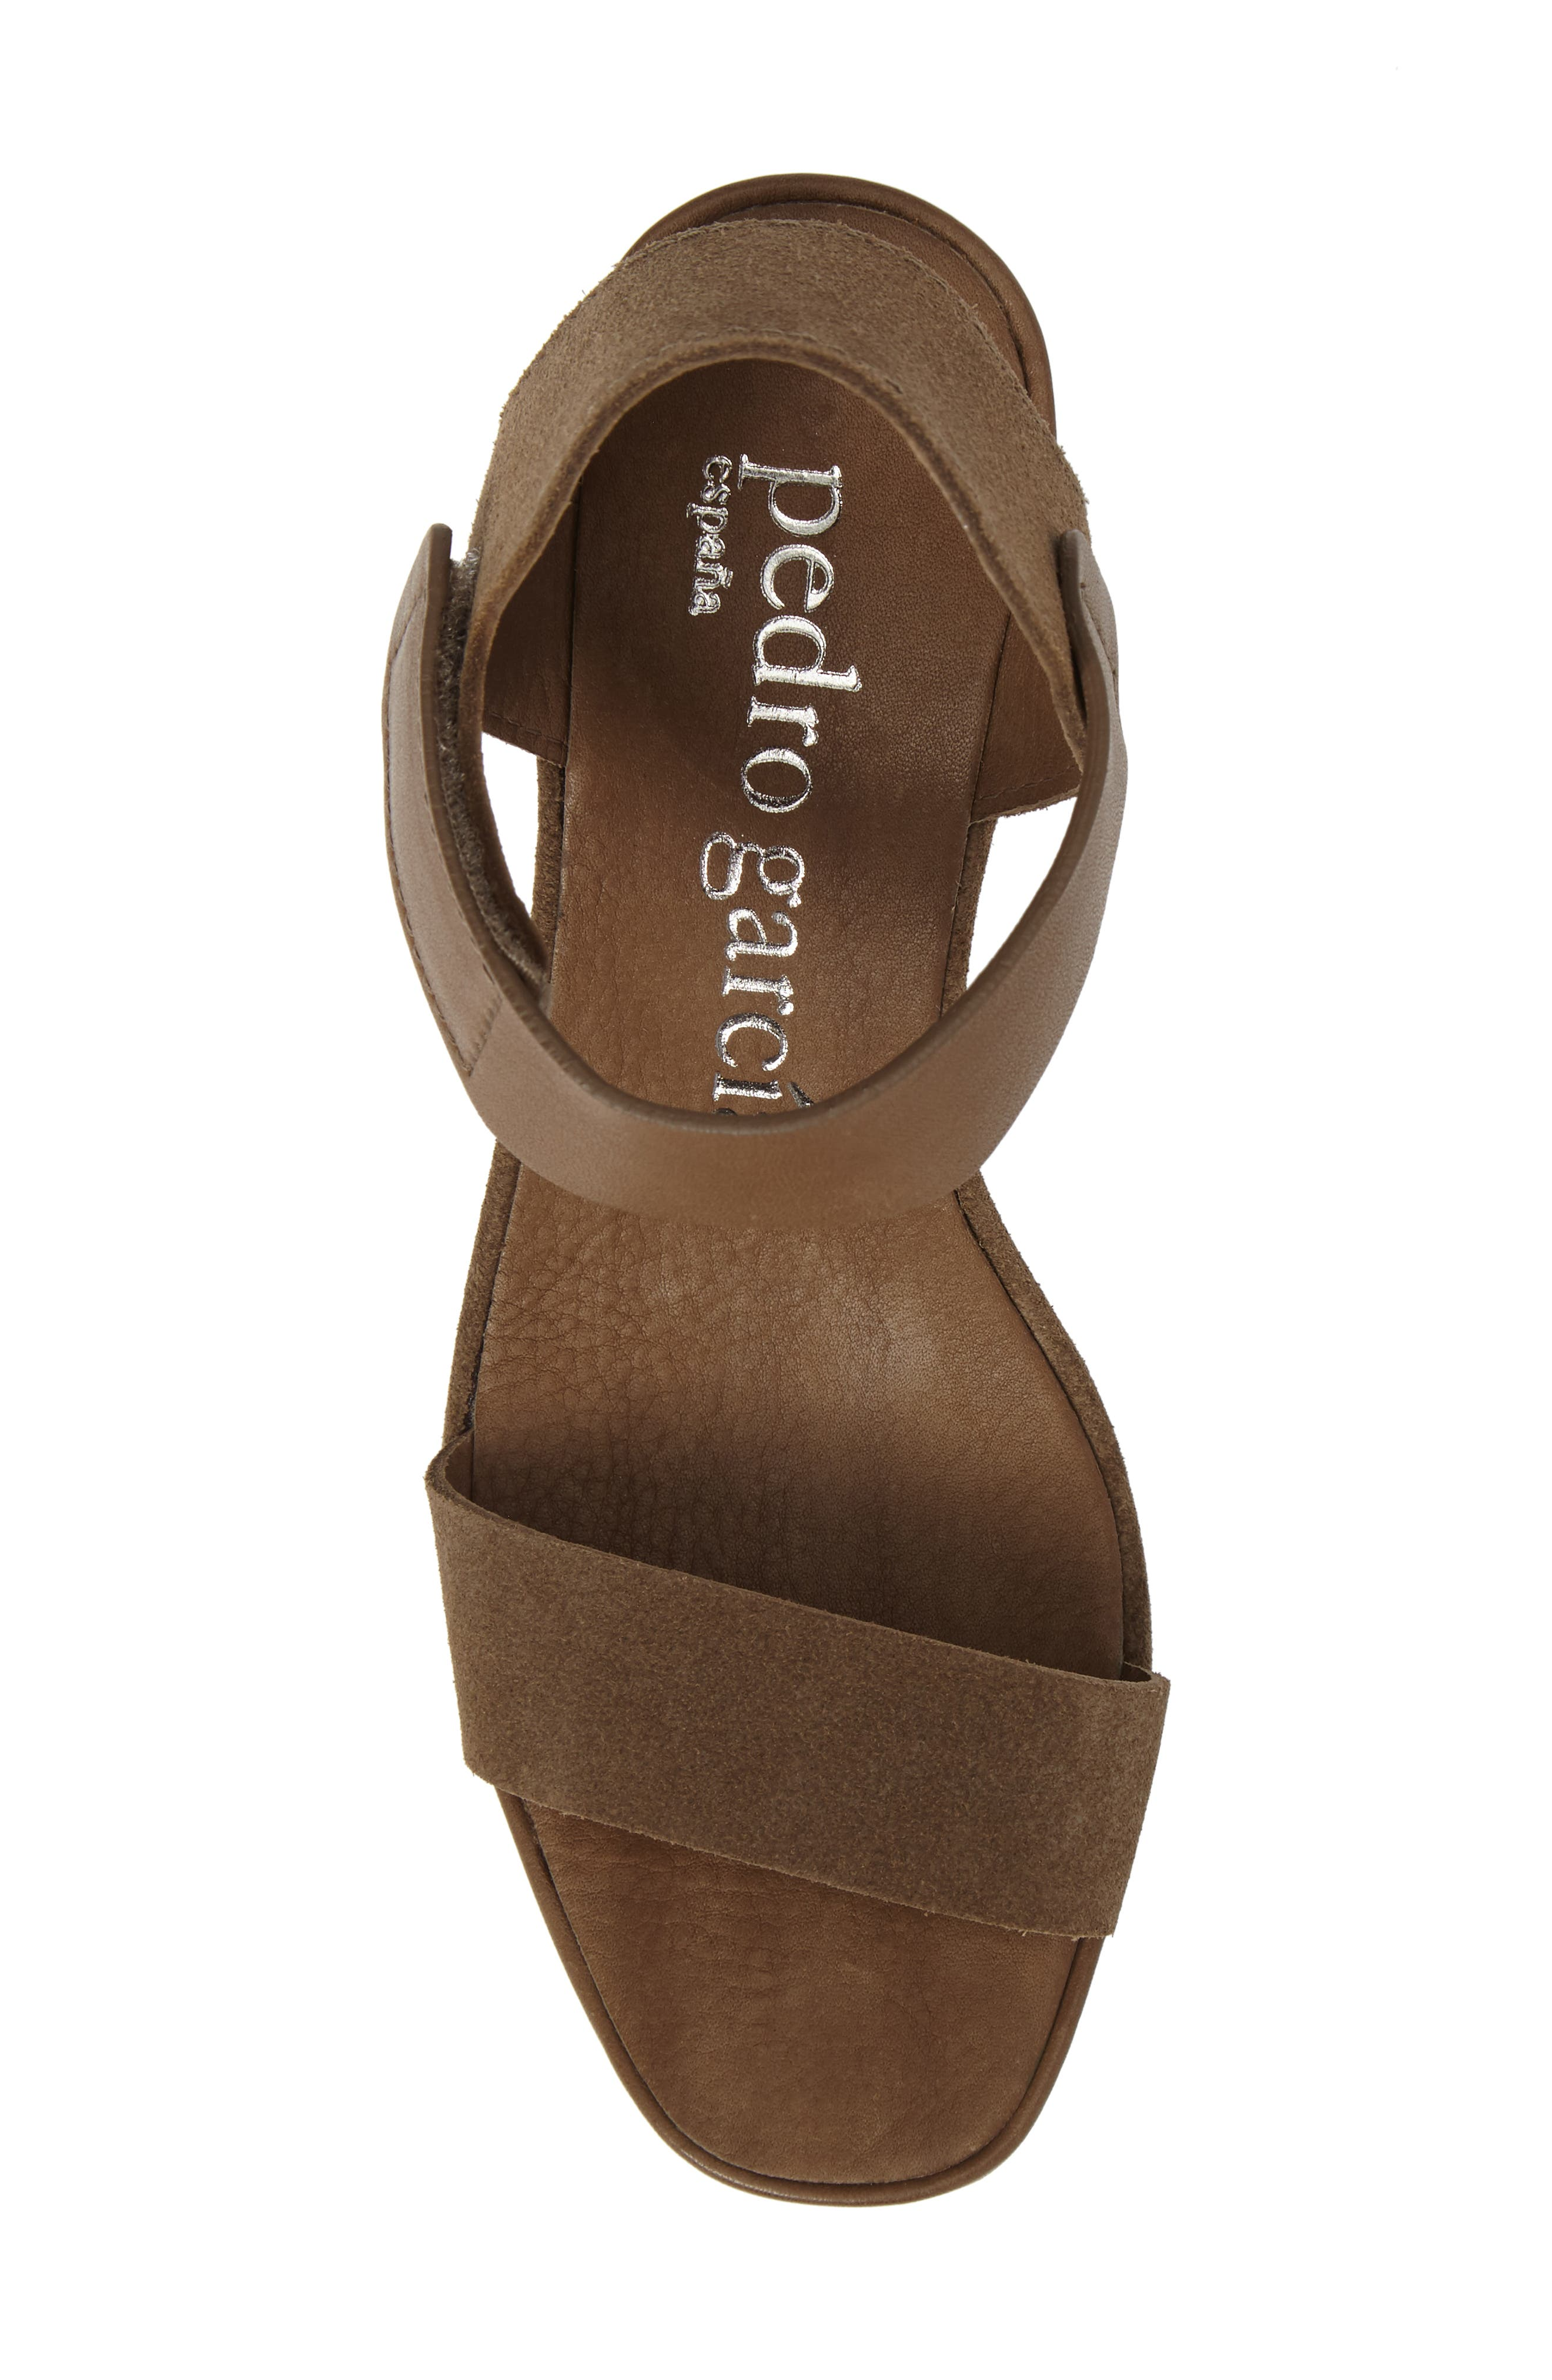 Francesca Wedge Sandal,                             Alternate thumbnail 5, color,                             250